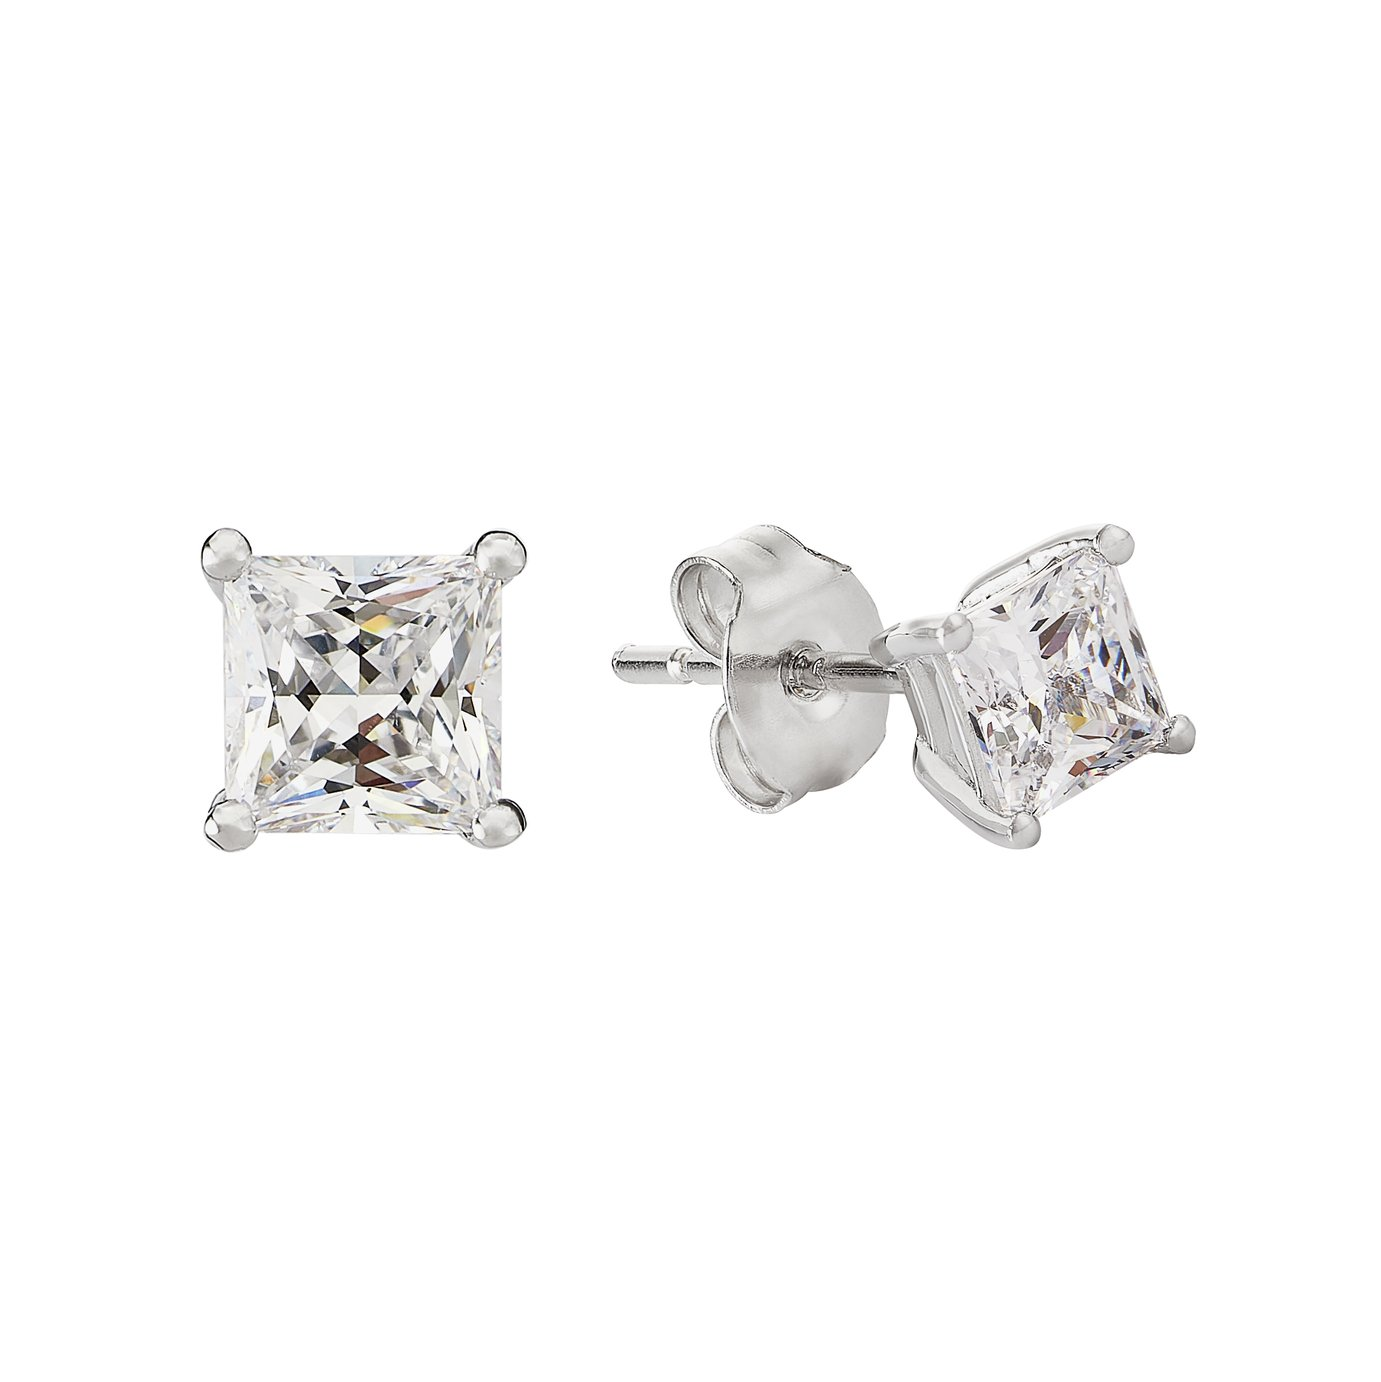 81931bd0 15% off when you spend £30 or more on jewellery | Argos Price ...